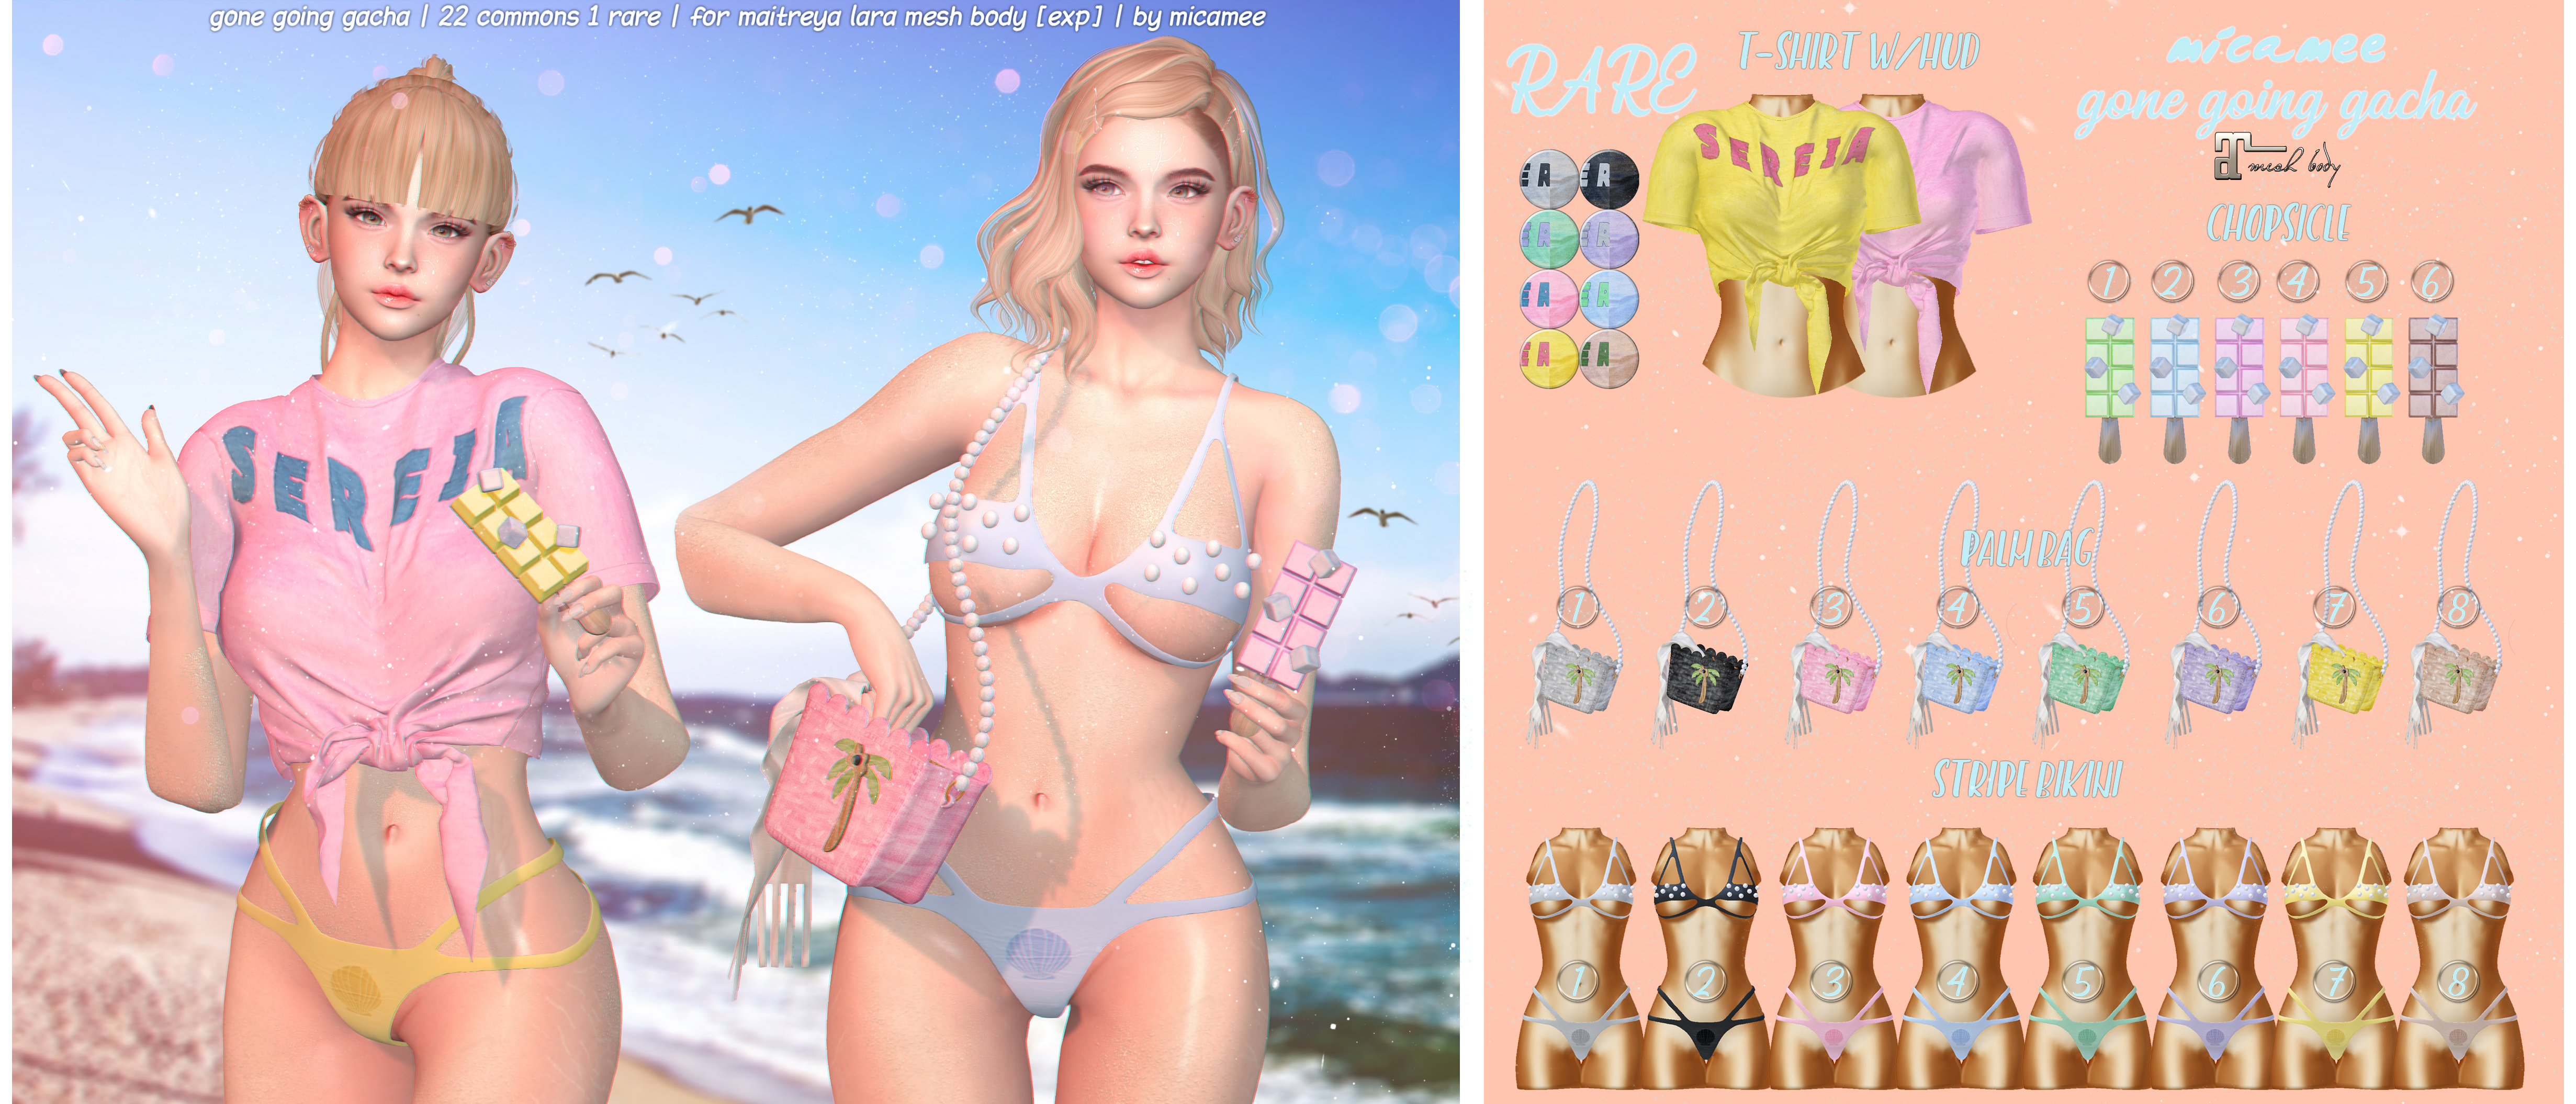 micamee – Gone Going GACHA – Second Life of Kassy Fox